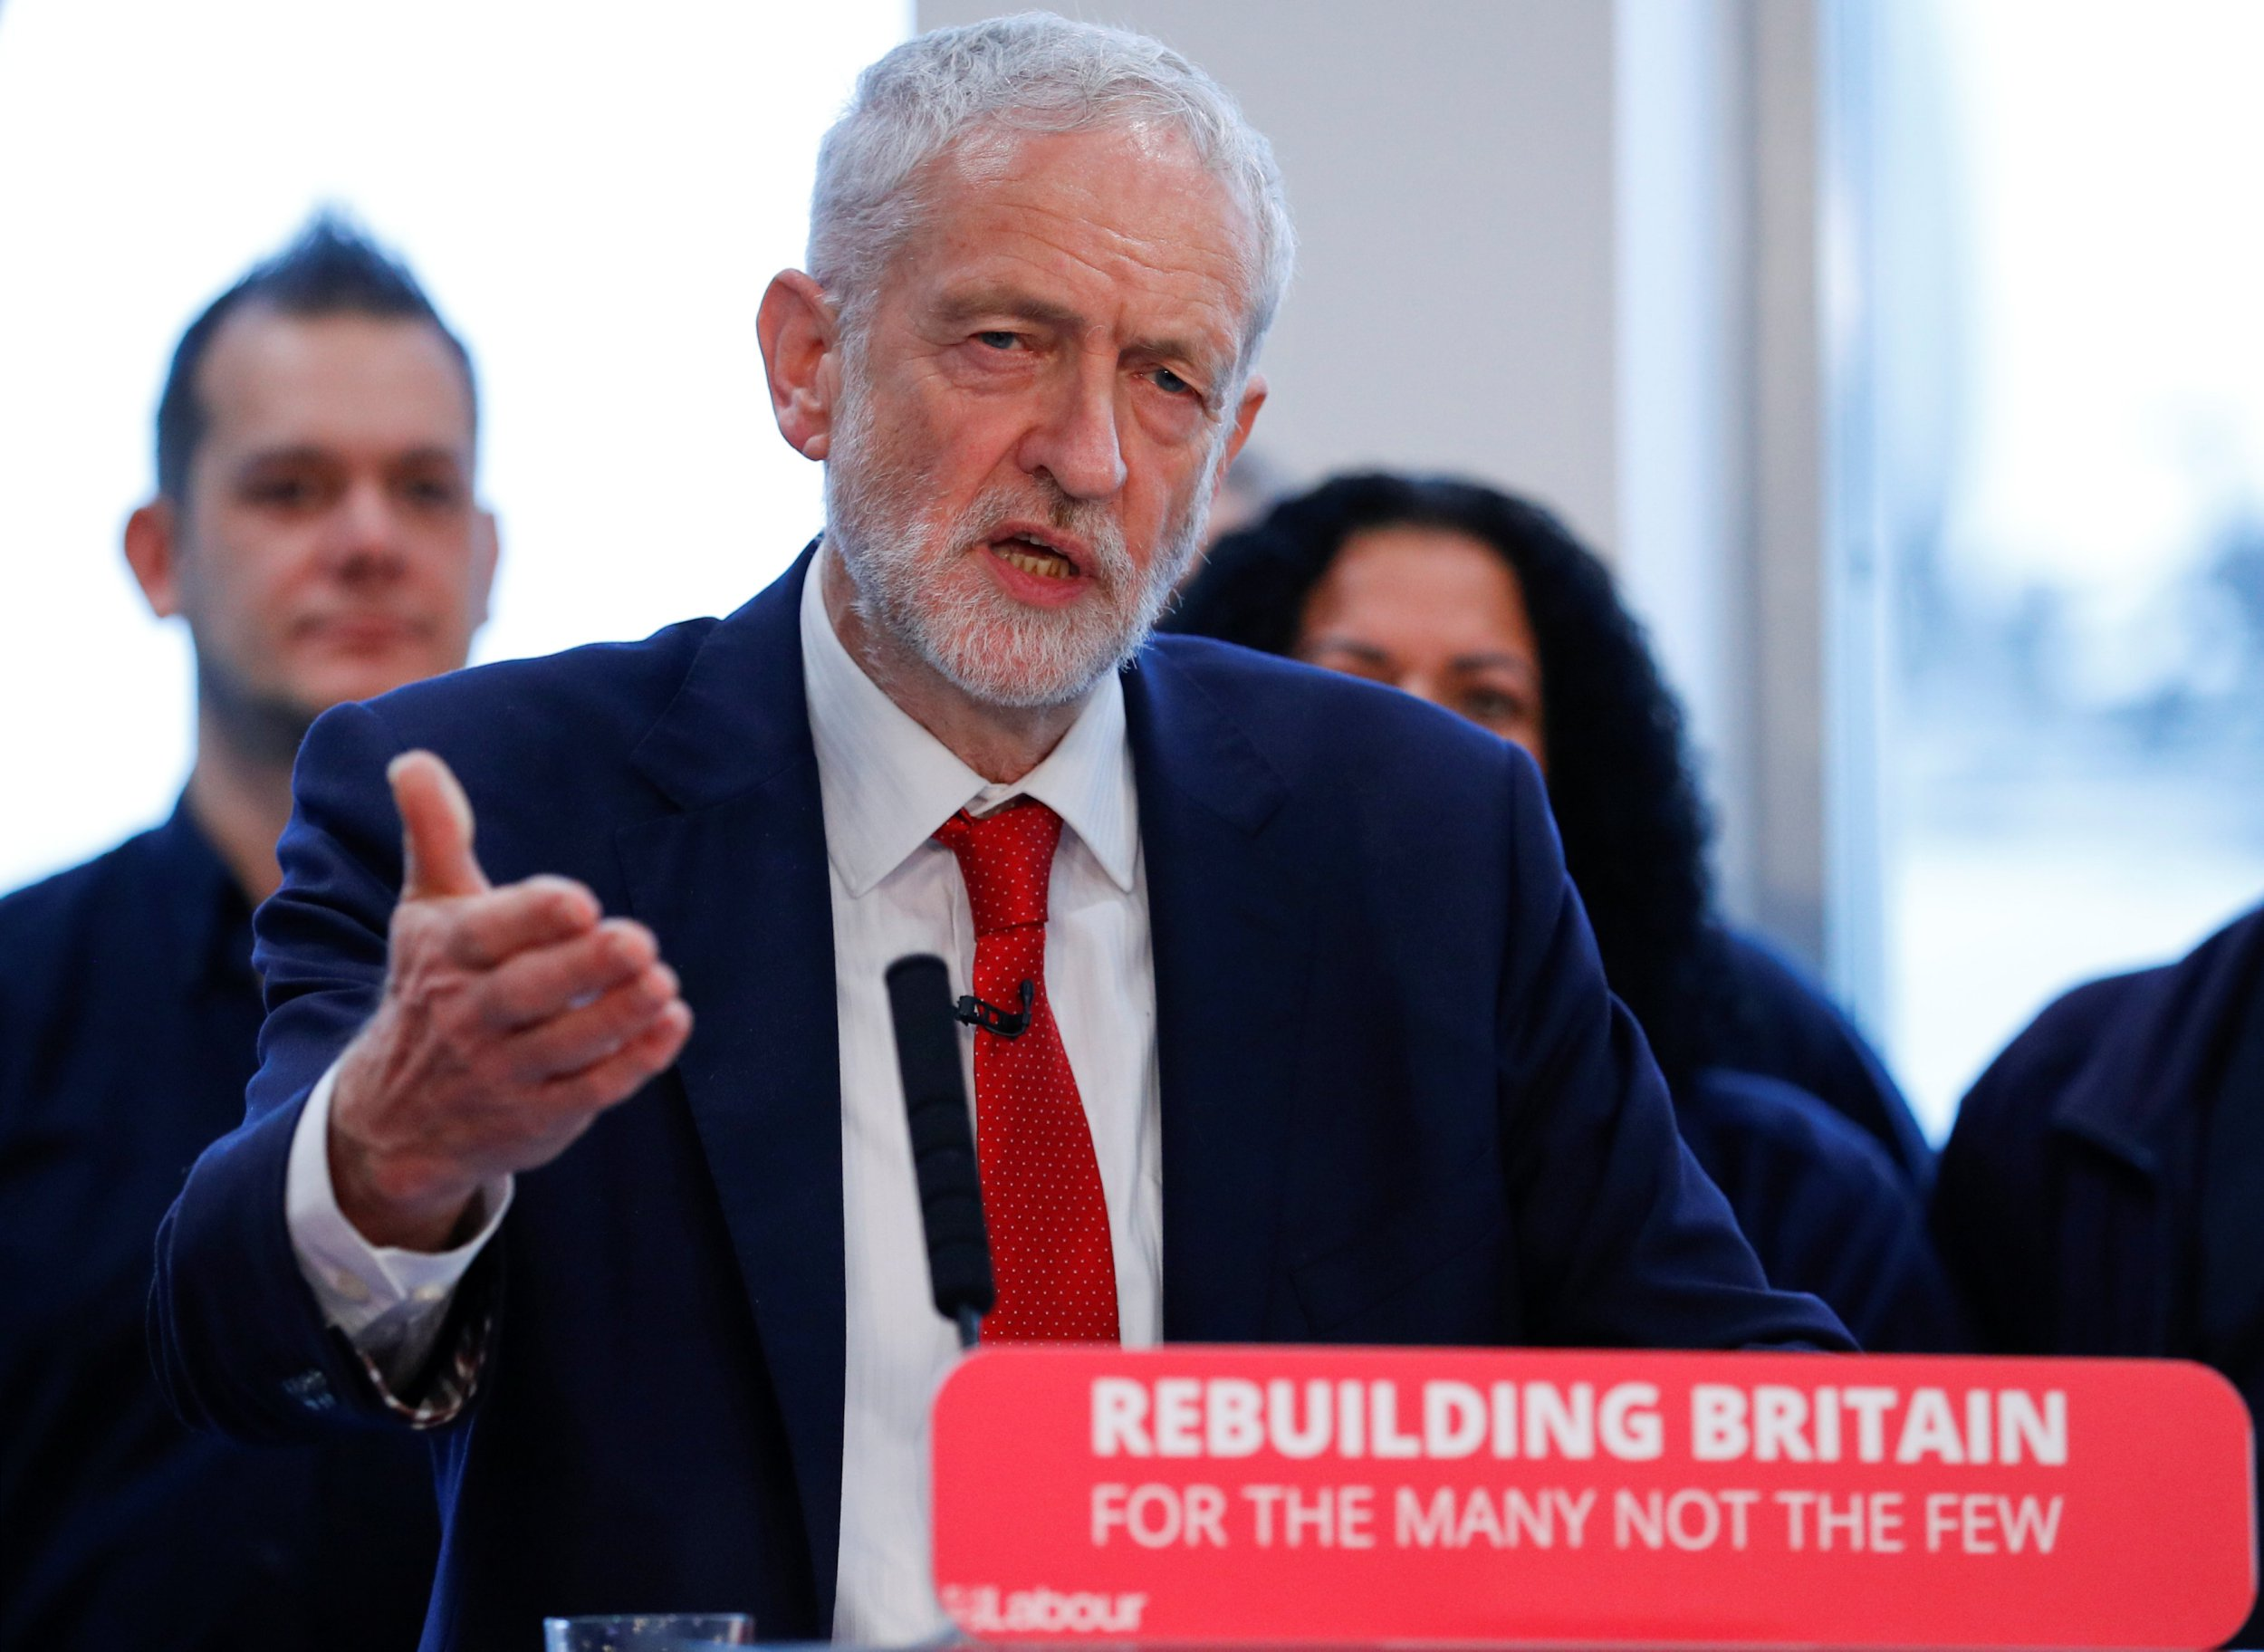 Supporting a People's Vote would finish the Labour Party for a generation